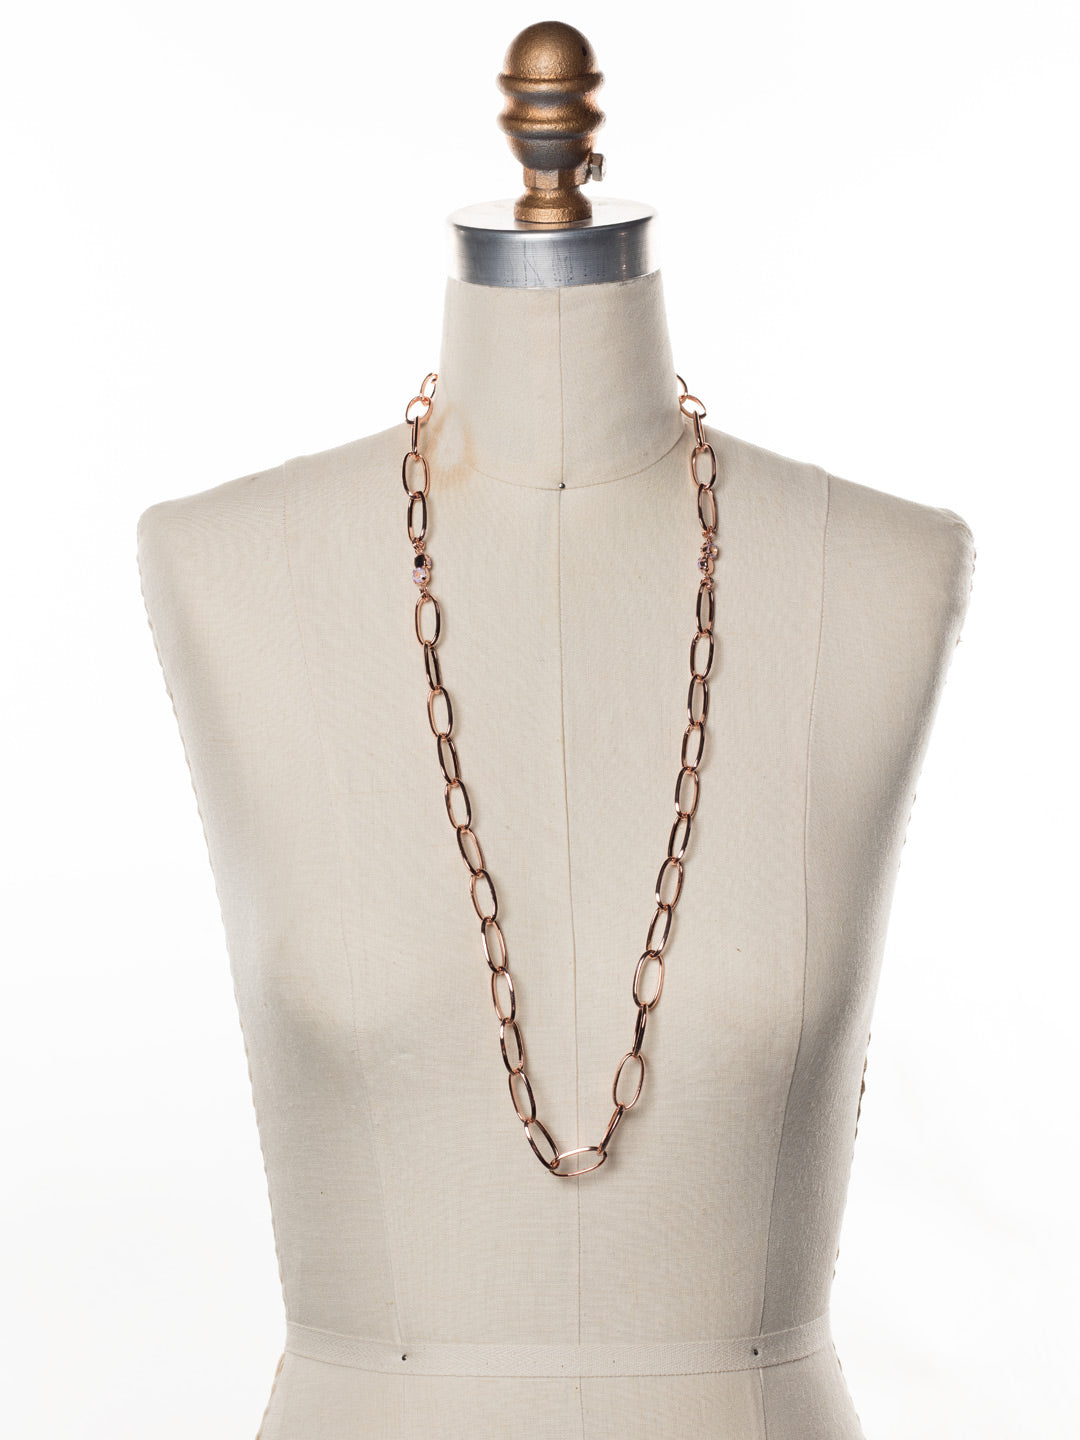 Tamara Long Necklace - NEP32RGLVP